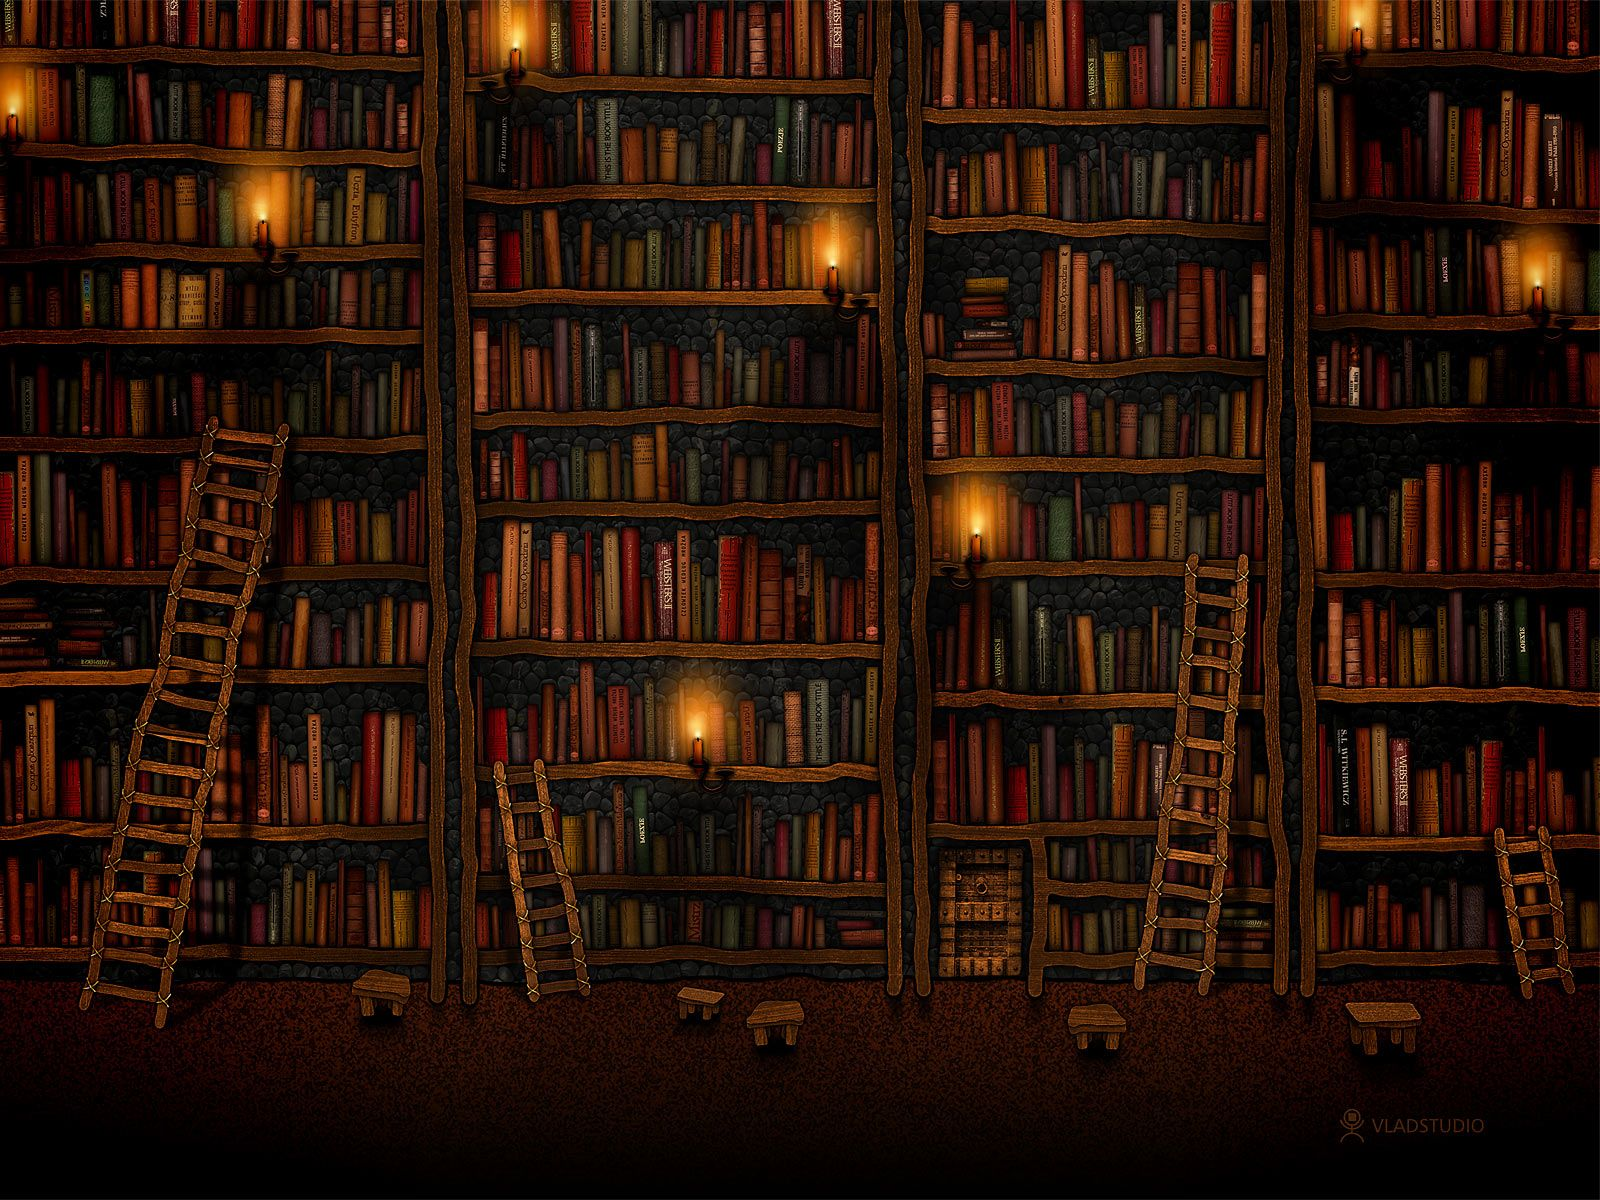 Giant Library Night Wallpaper 1600x1200